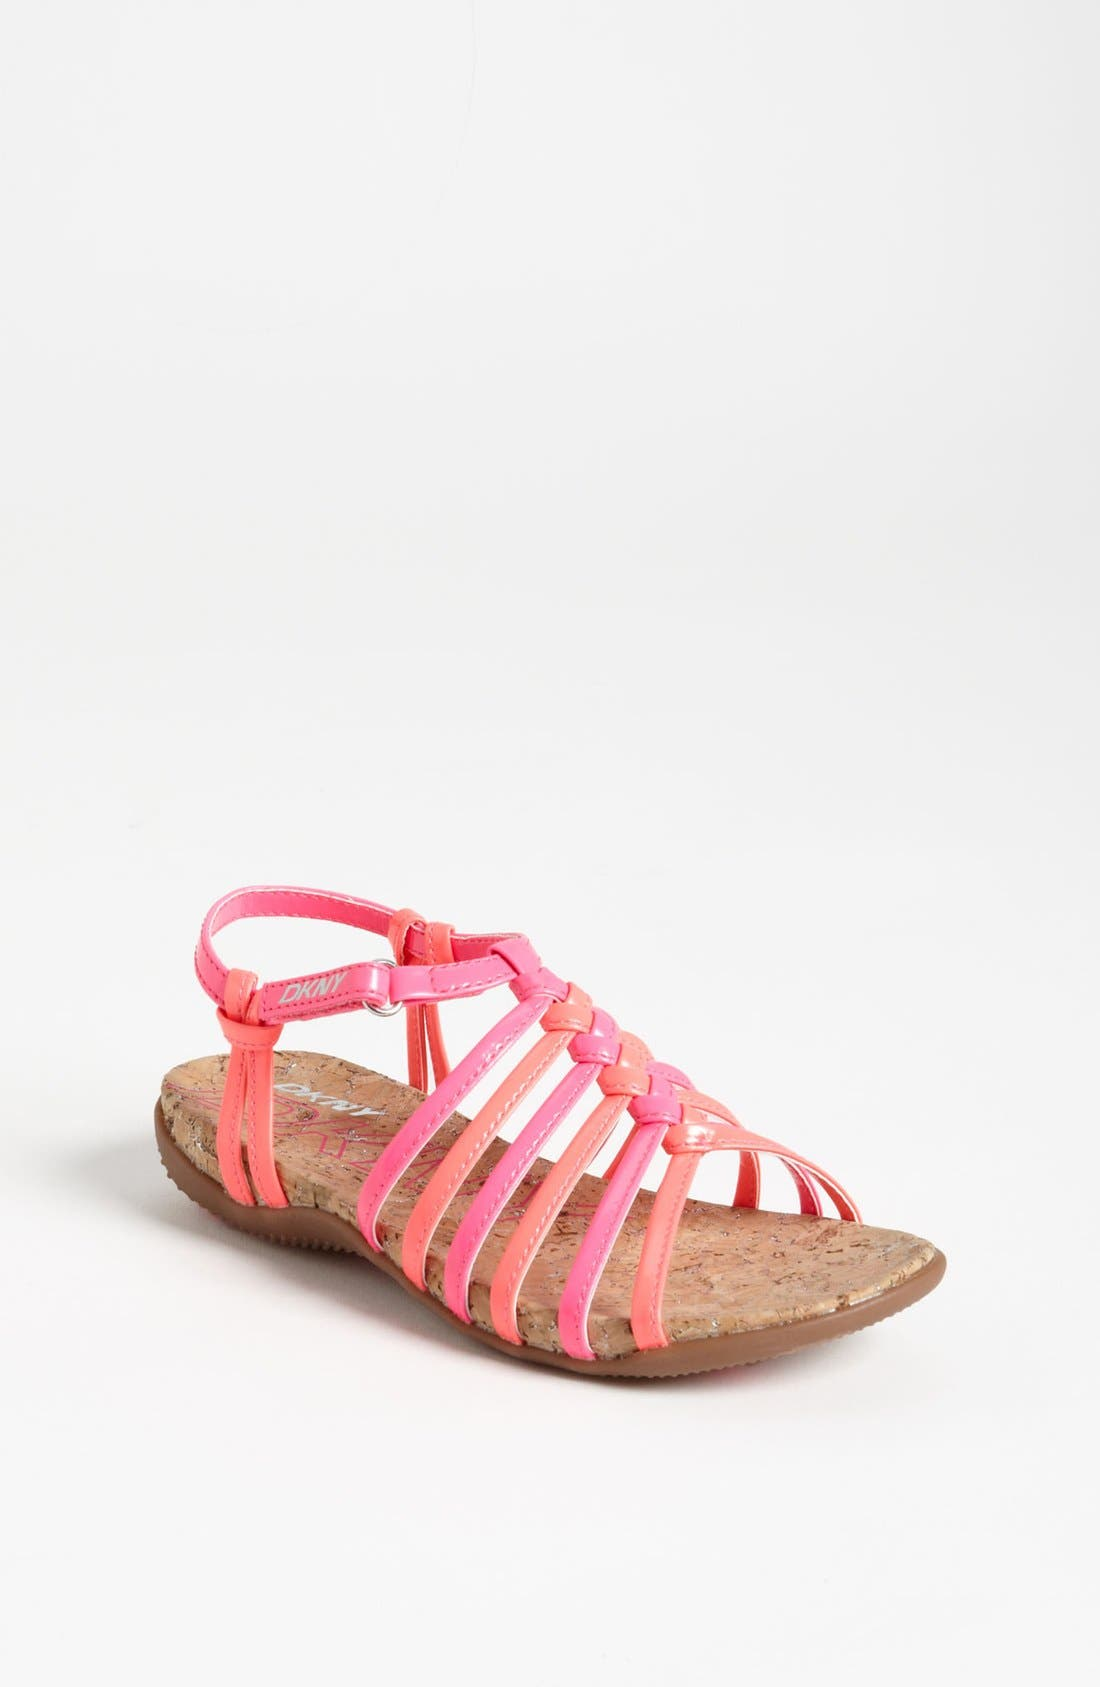 Main Image - DKNY 'Venetia' Sandal (Toddler, Little Kid & Big Kid)